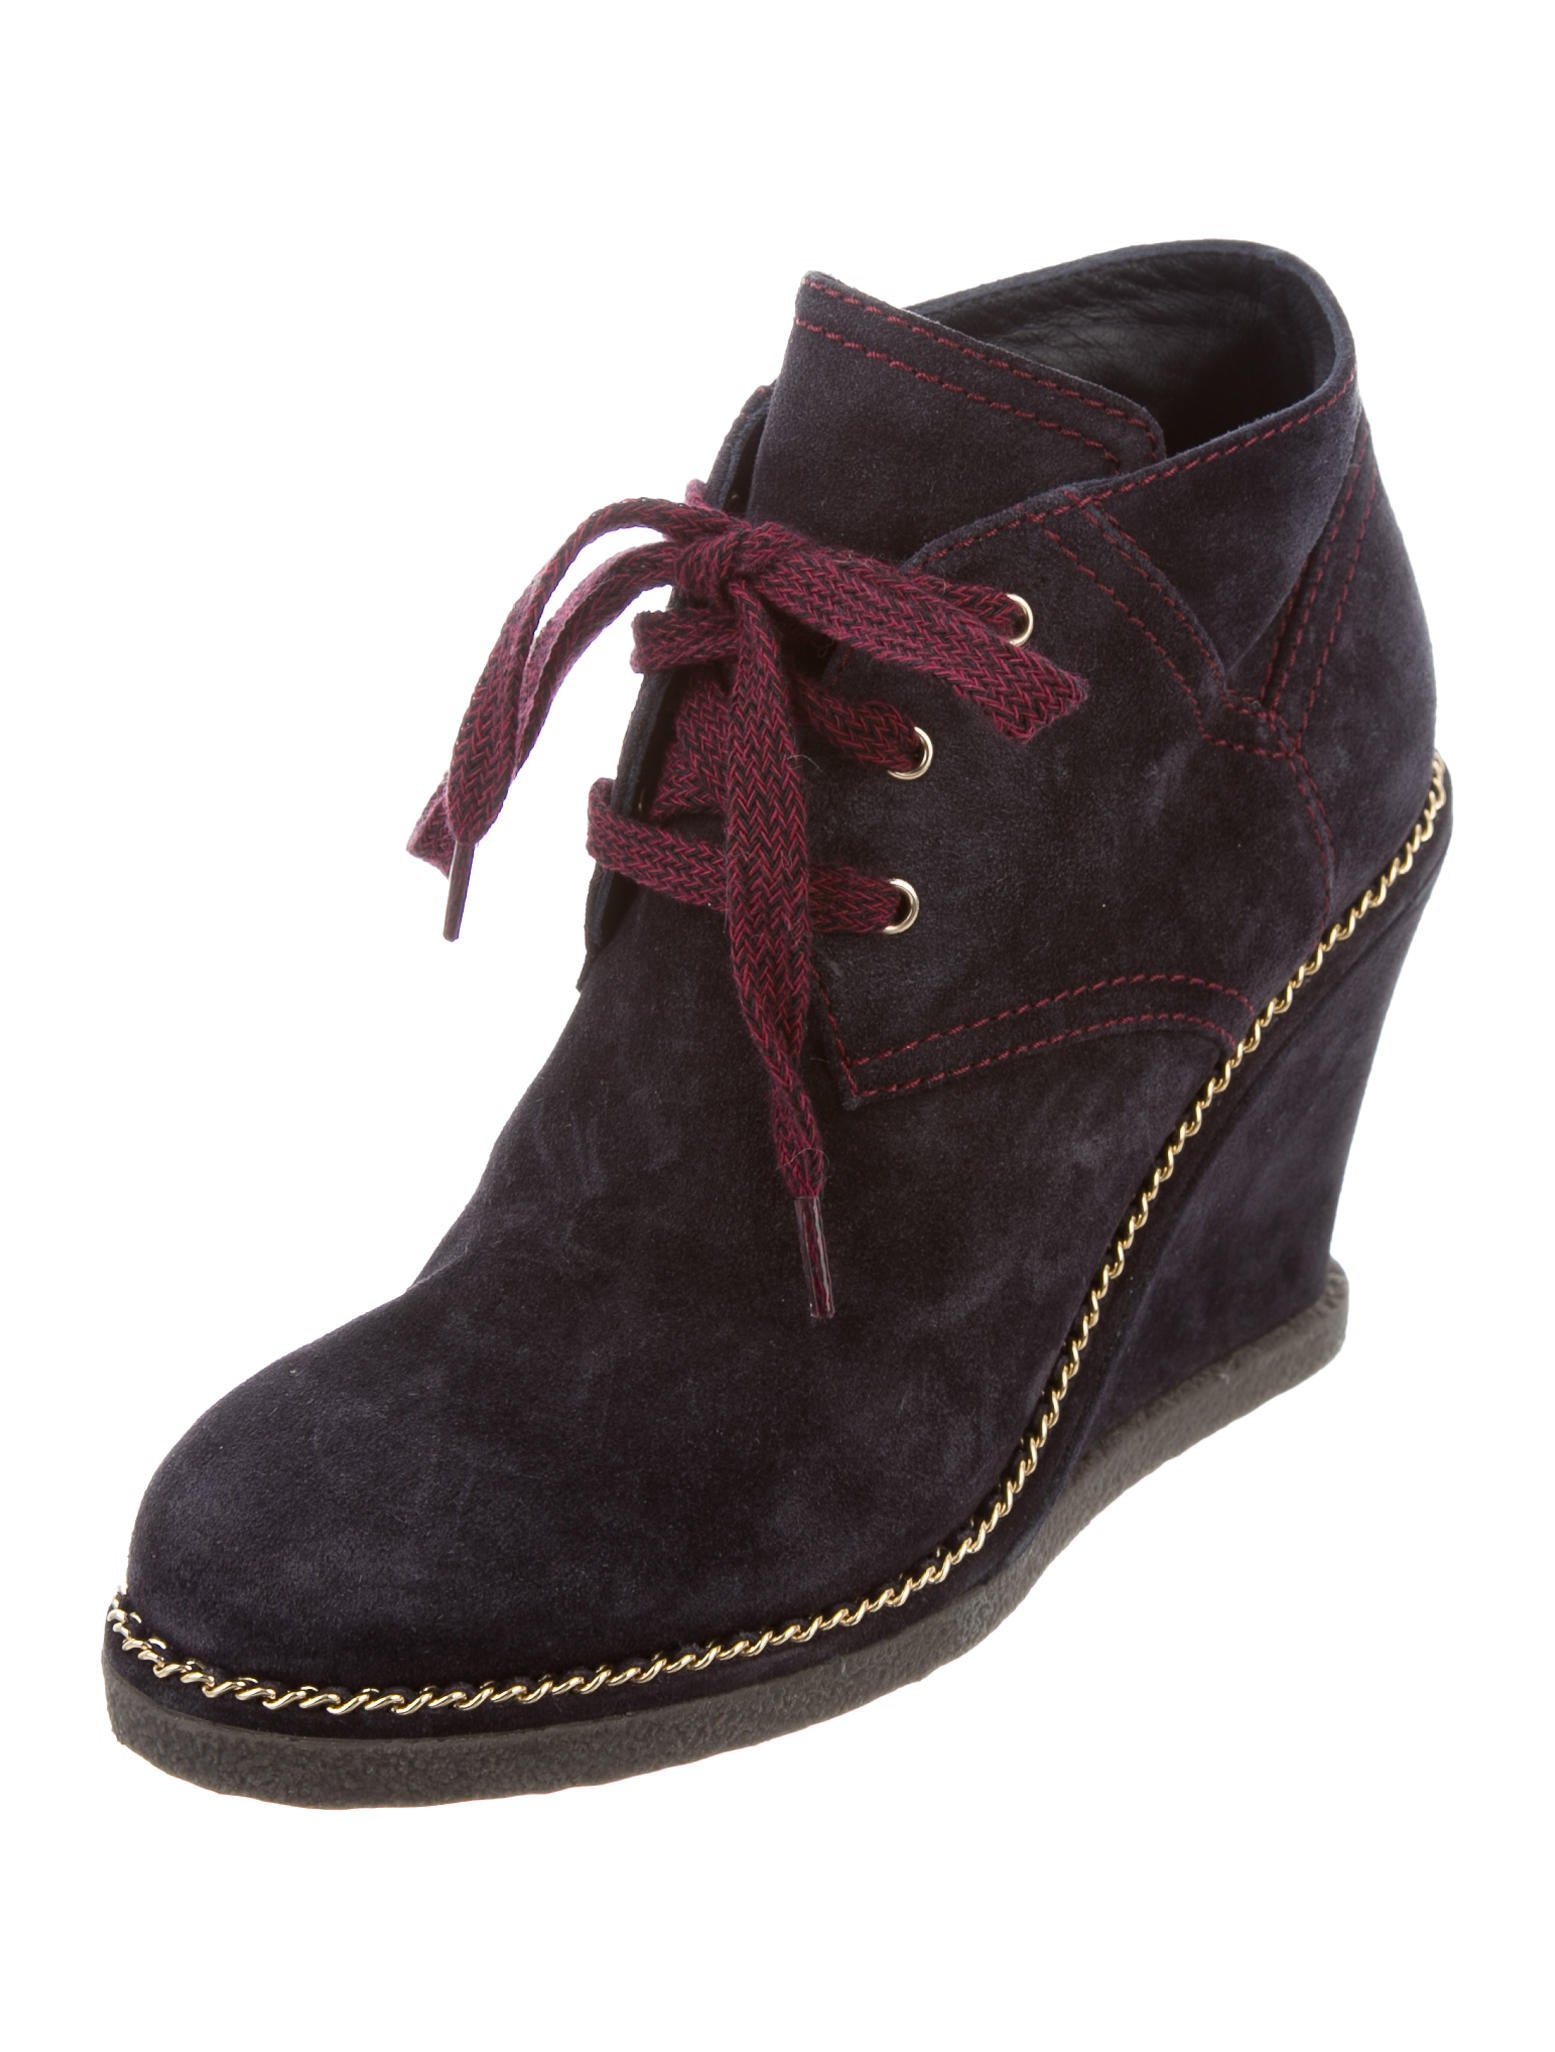 Chanel Suede Wedge Booties Shoes Cha155337 The Realreal